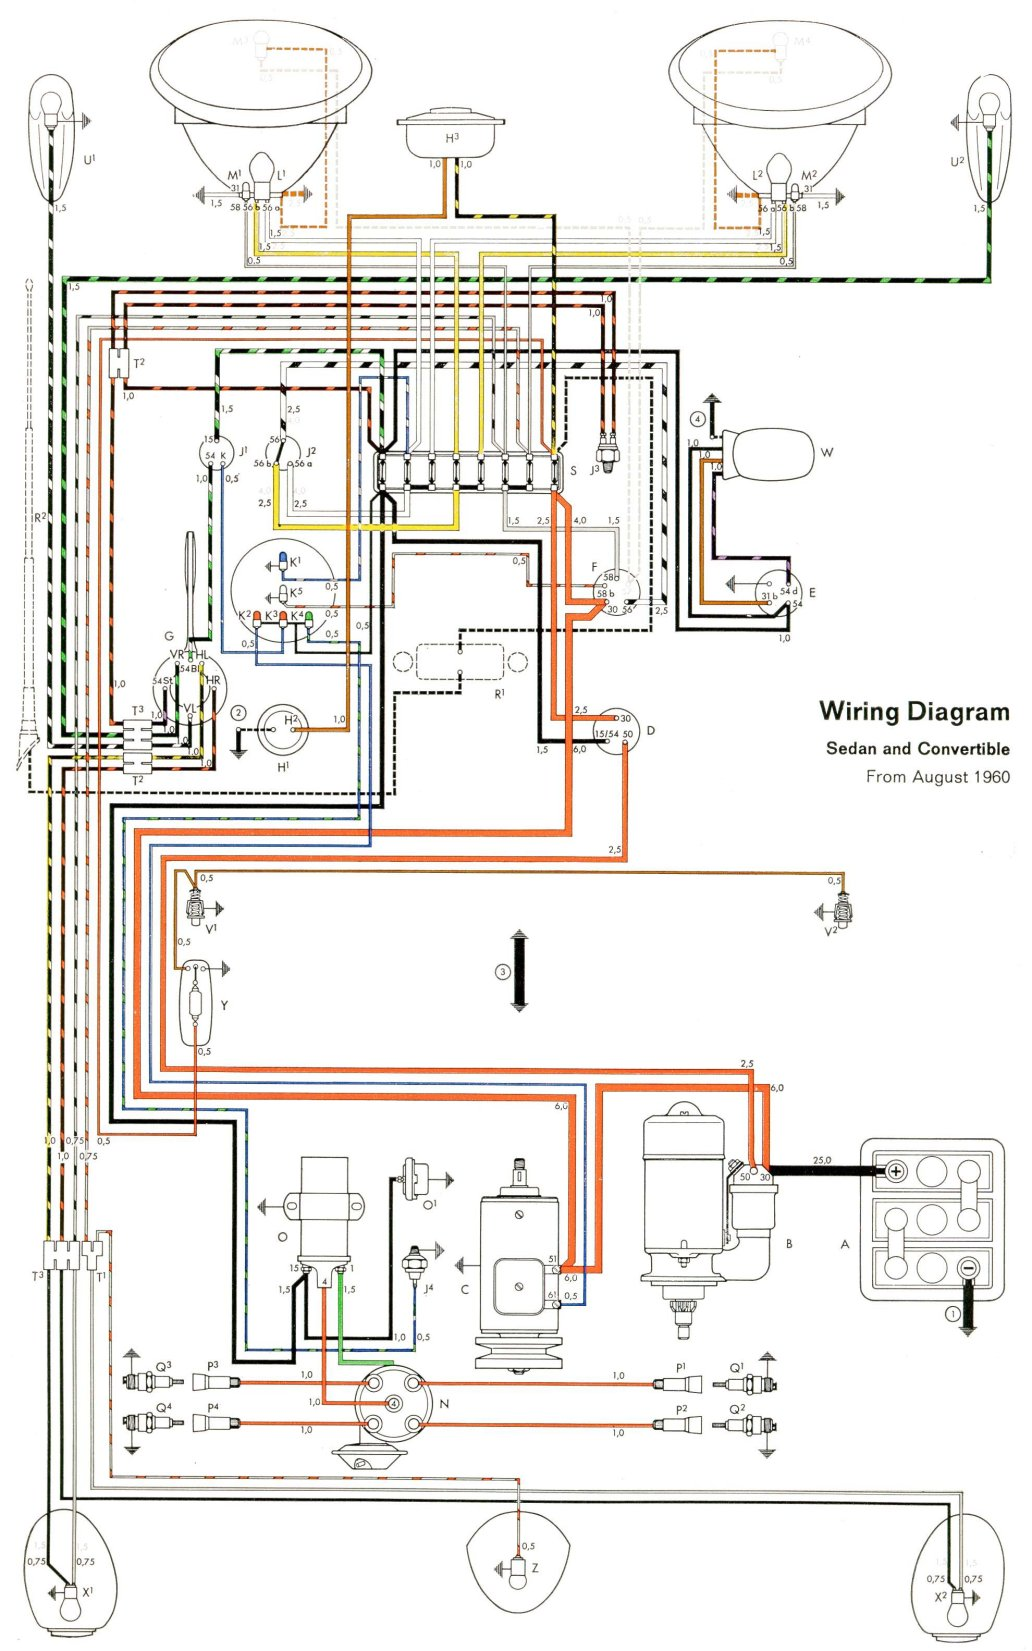 bug_61 1949 vw wiring diagram on 1949 download wirning diagrams wiring diagram for 1998 vw beetle at bayanpartner.co